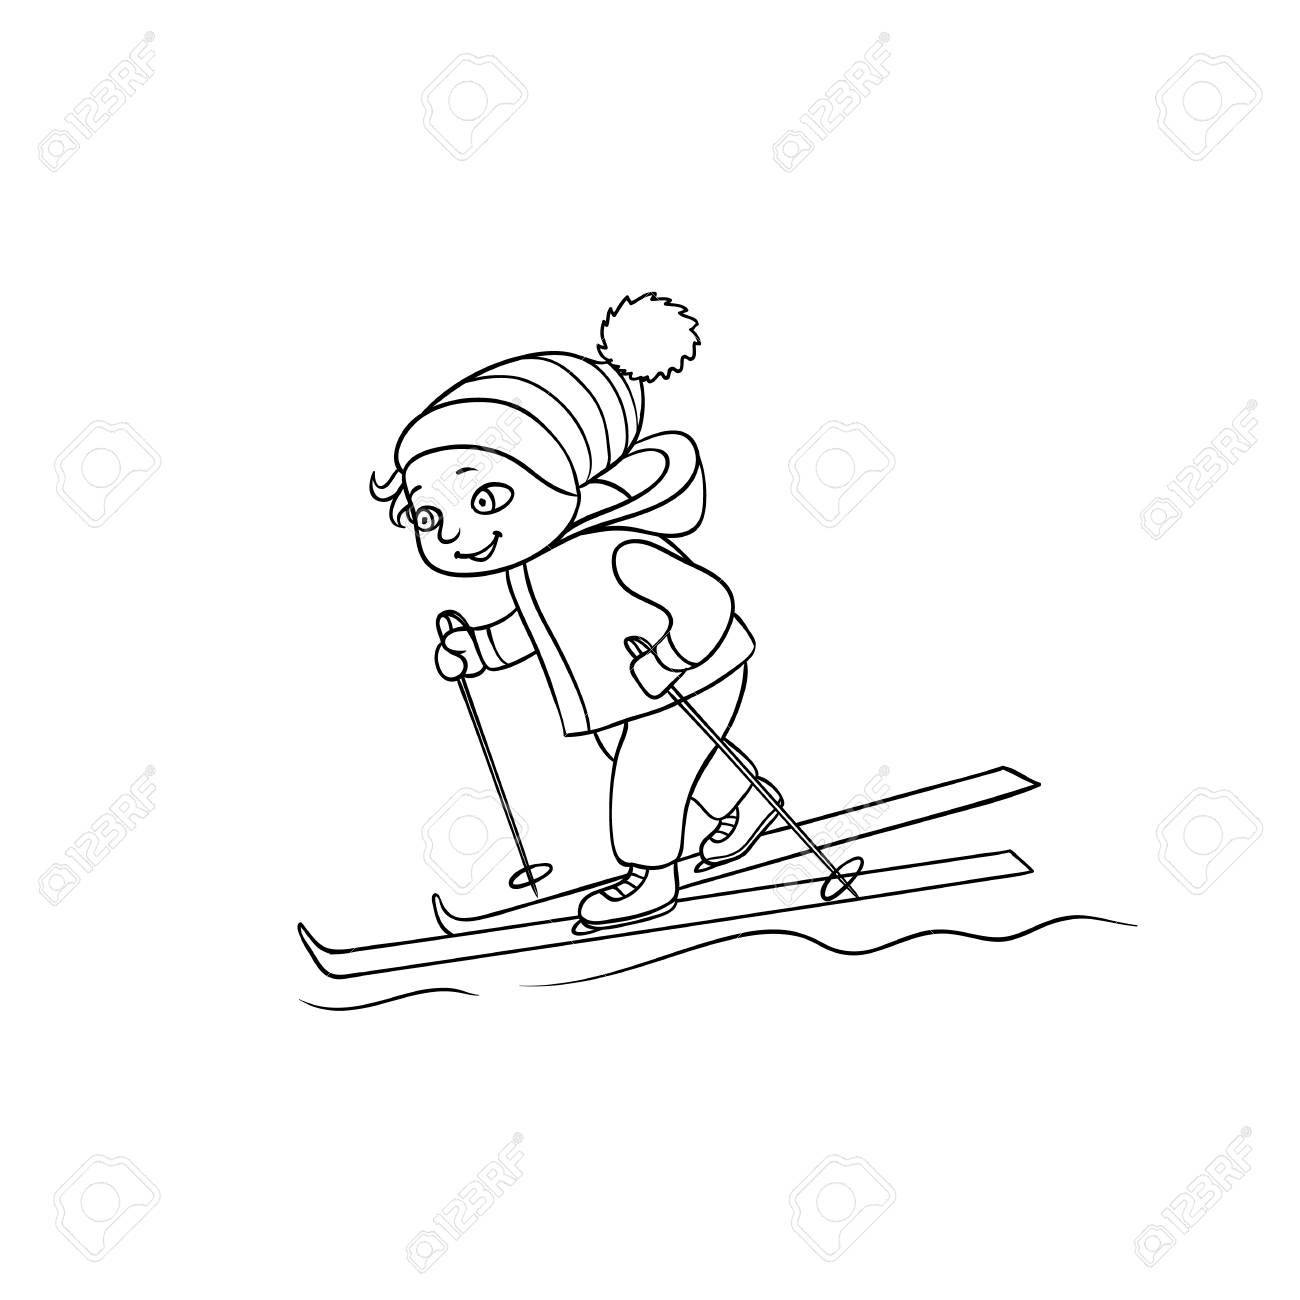 1300x1300 Happy Little Boy Skiing, Winter Sport Activity, Black And White